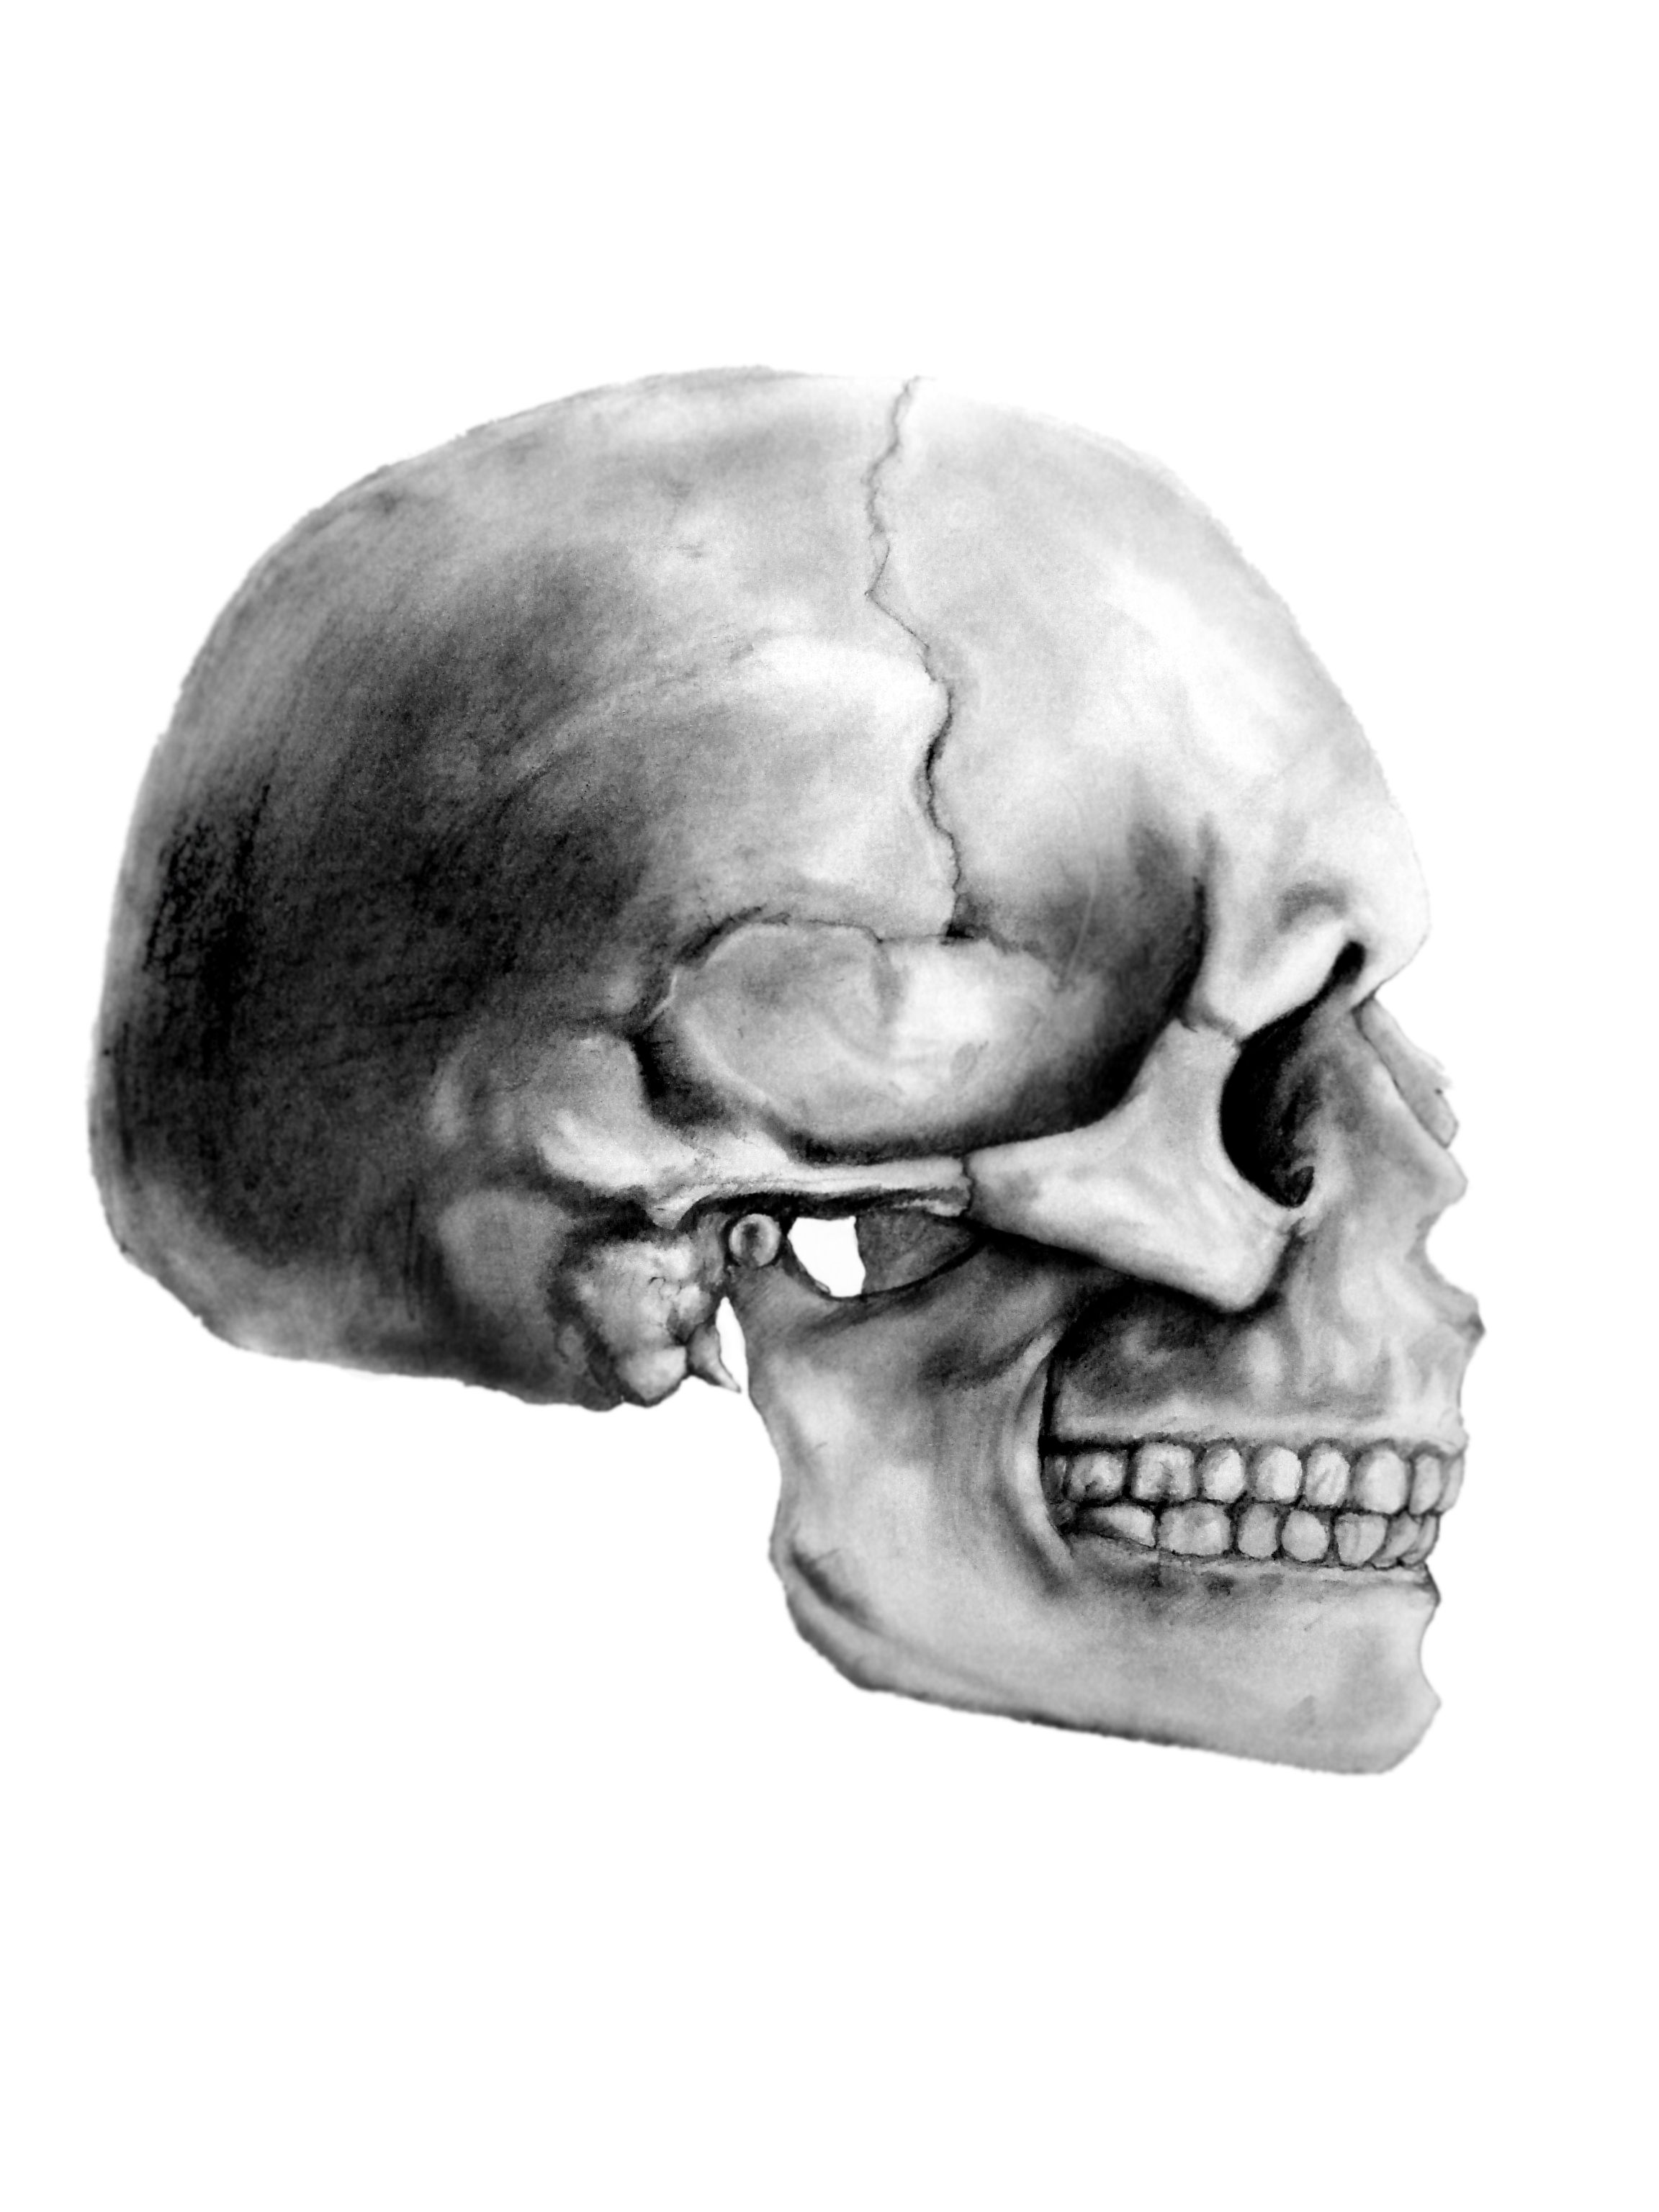 It is a graphic of Obsessed Skull Profile Drawing